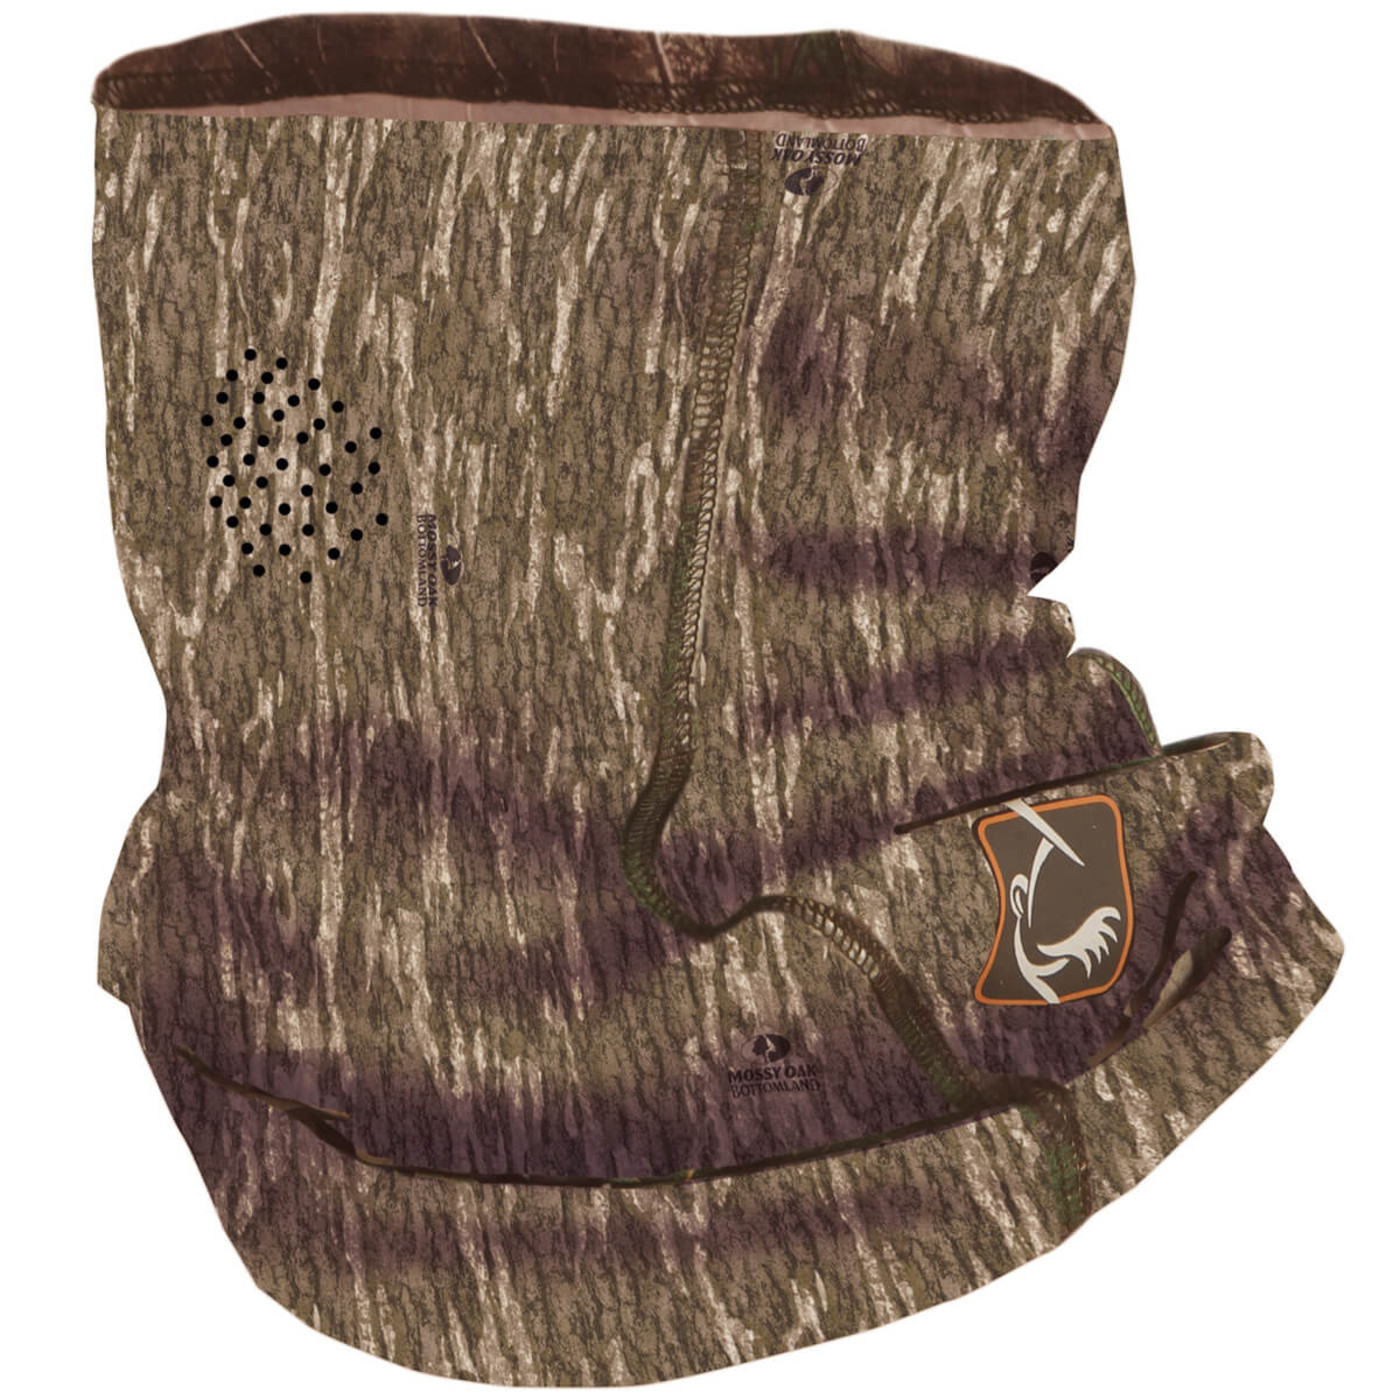 Ol' Tom Performance Buff Face Mask in Mossy Oak Bottomland Color